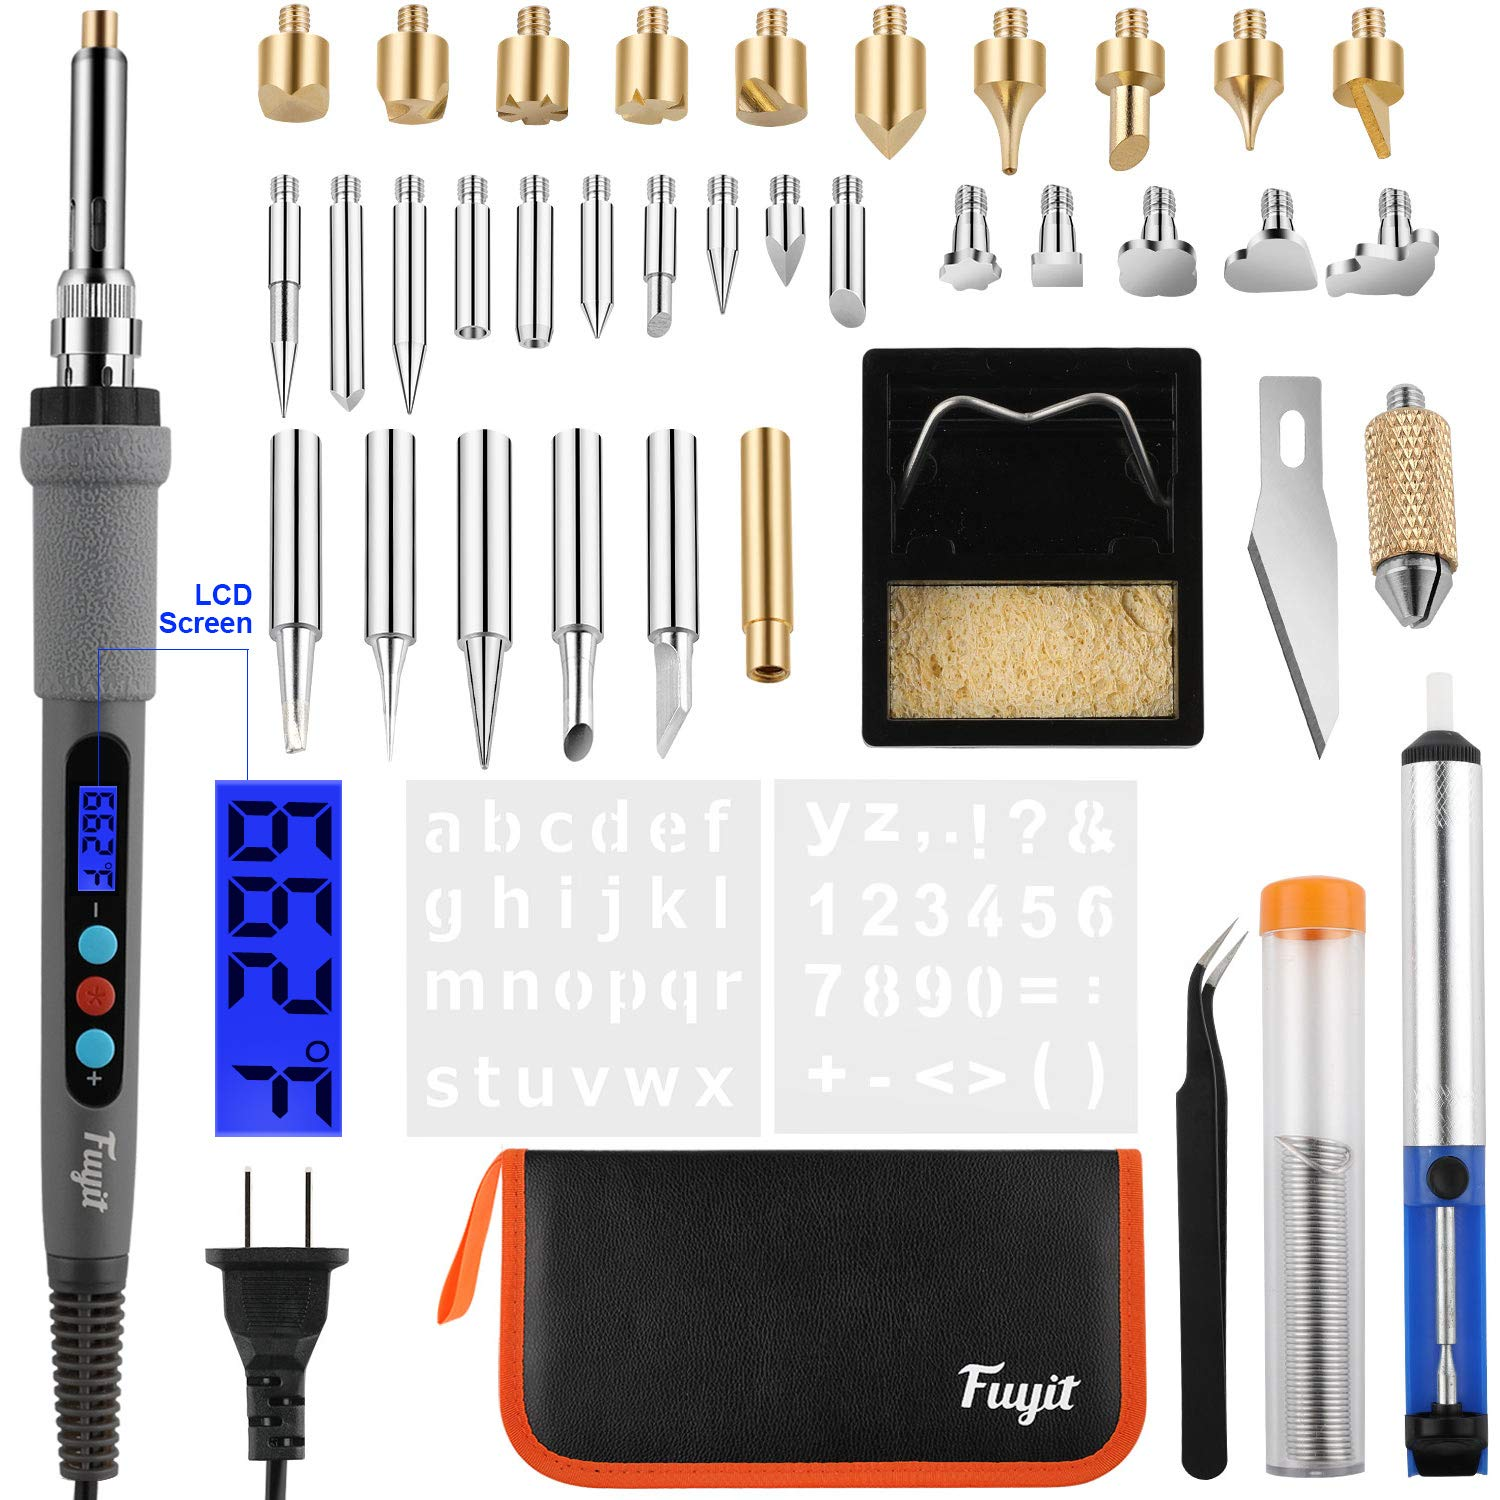 Make a Special Gift for Friends Variable Temp Deluxe Case 27 Tips with Cutting Blade Soldering Iron Embossing Leather Work Woodland Home Fully Adjustable Temperature Wood Burning Kit